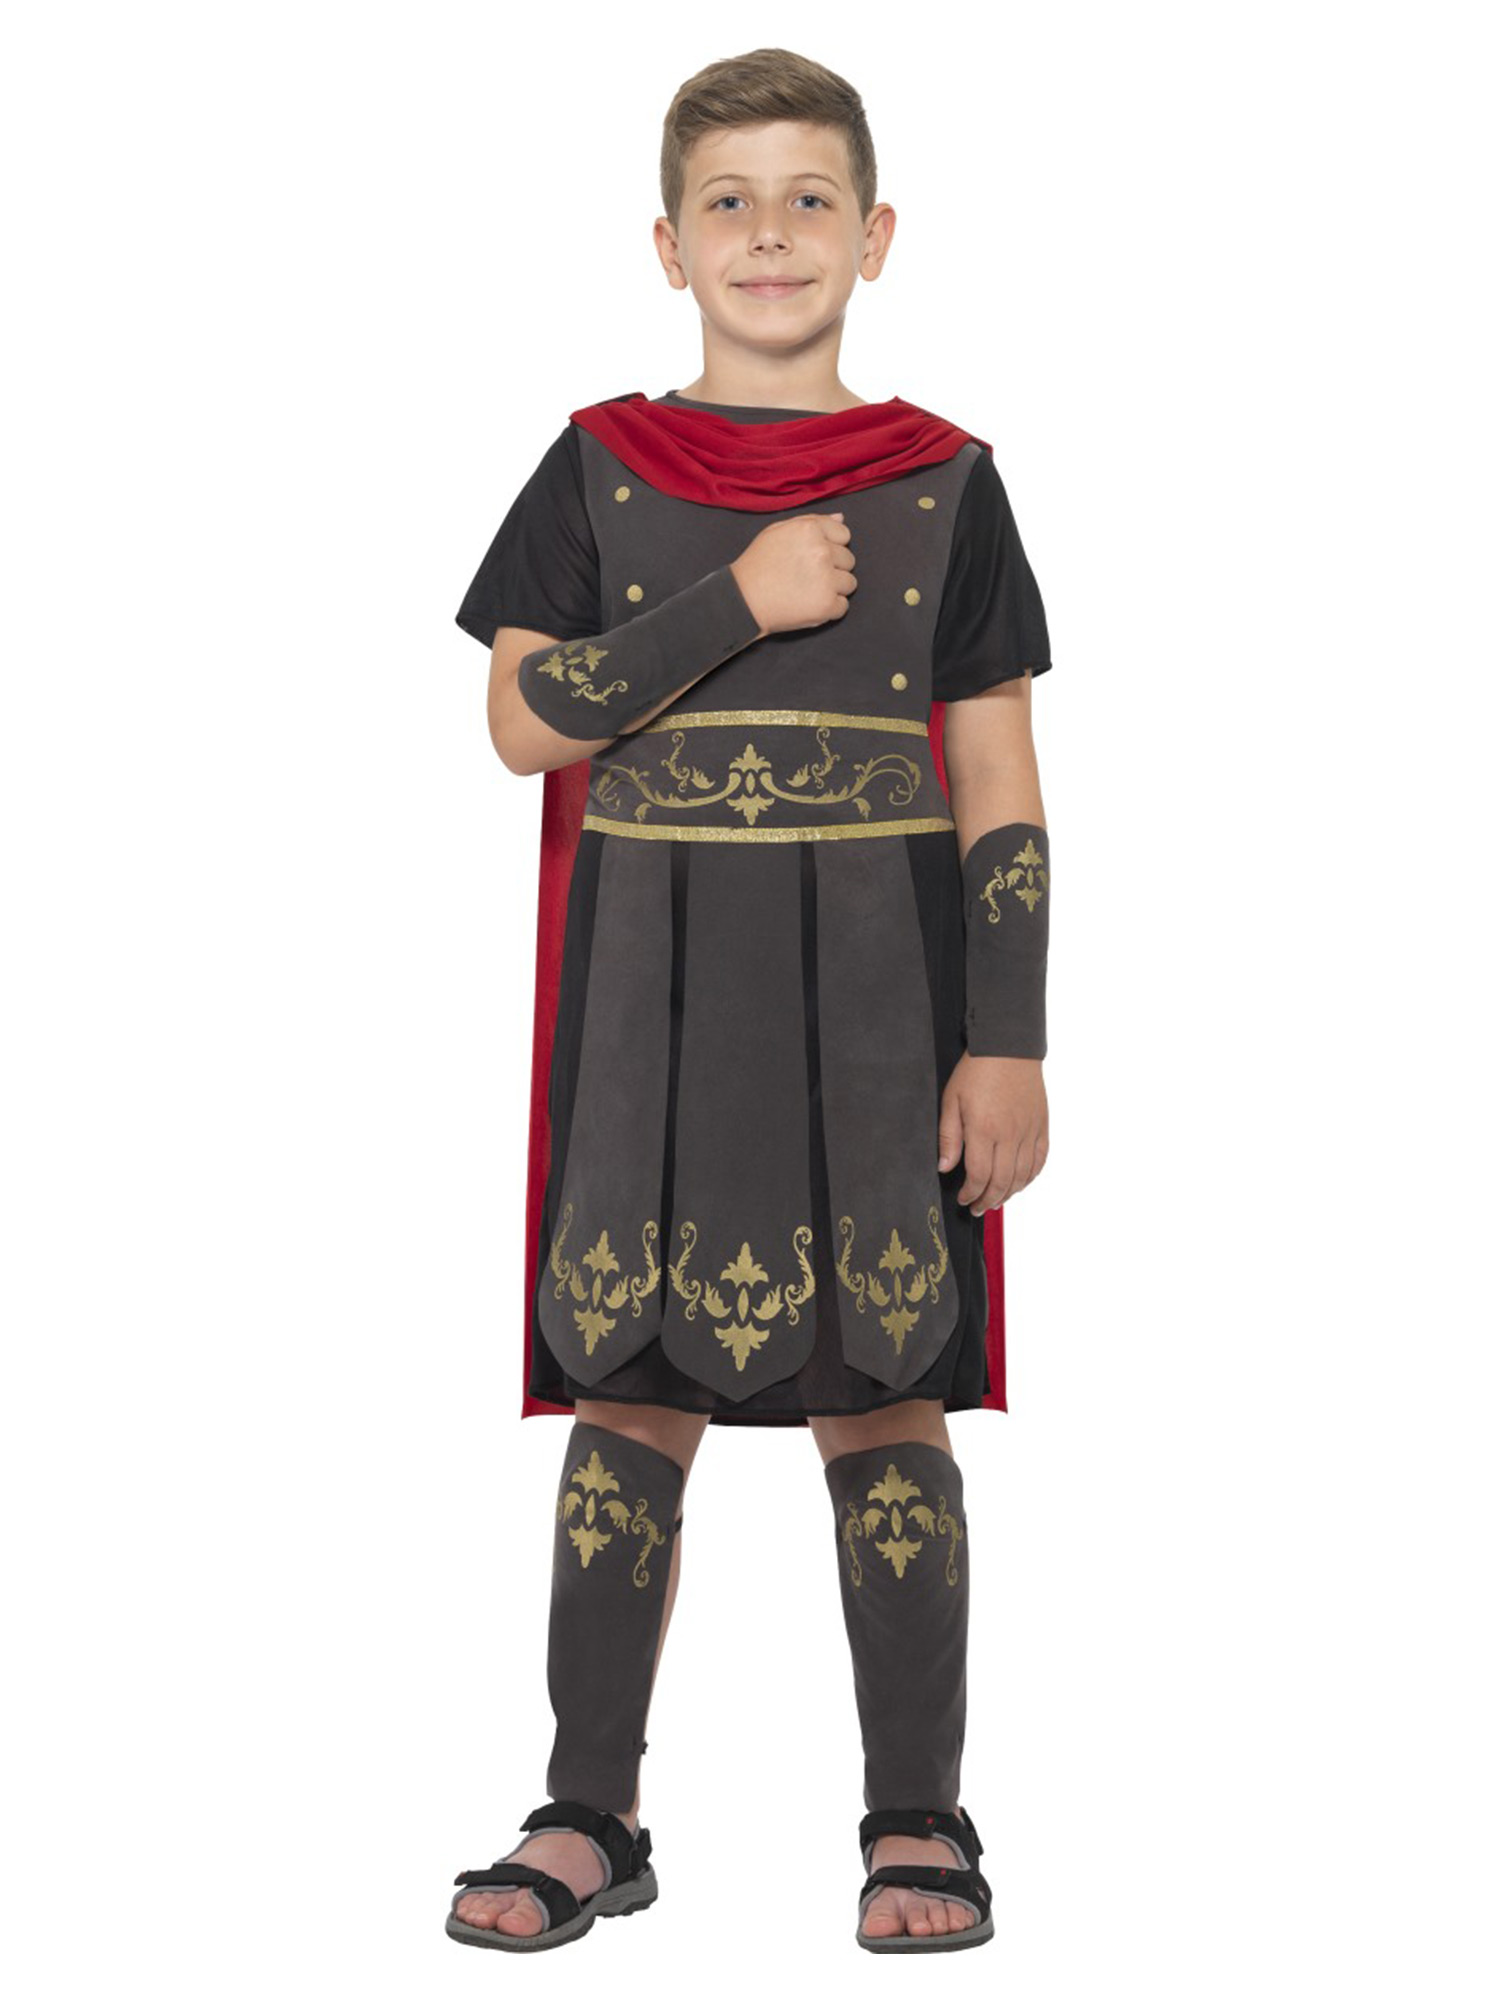 Roman Soldier Costume for Kids  sc 1 st  Walmart & Roman Soldier Costume for Kids - Walmart.com